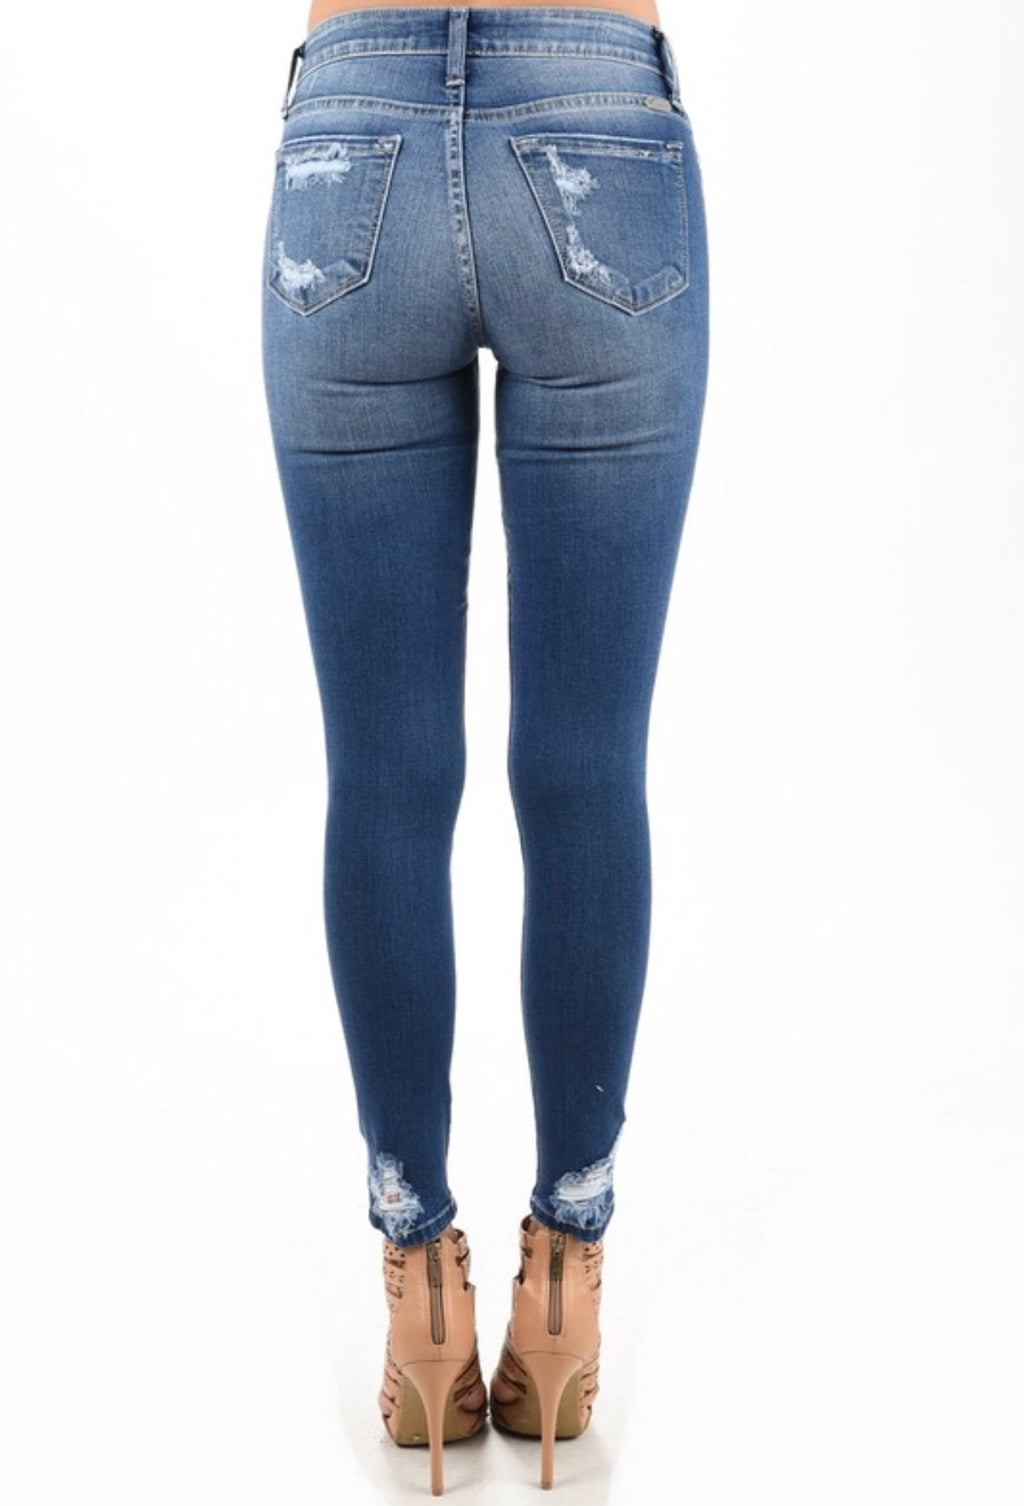 Party Rocker Distressed Jeans